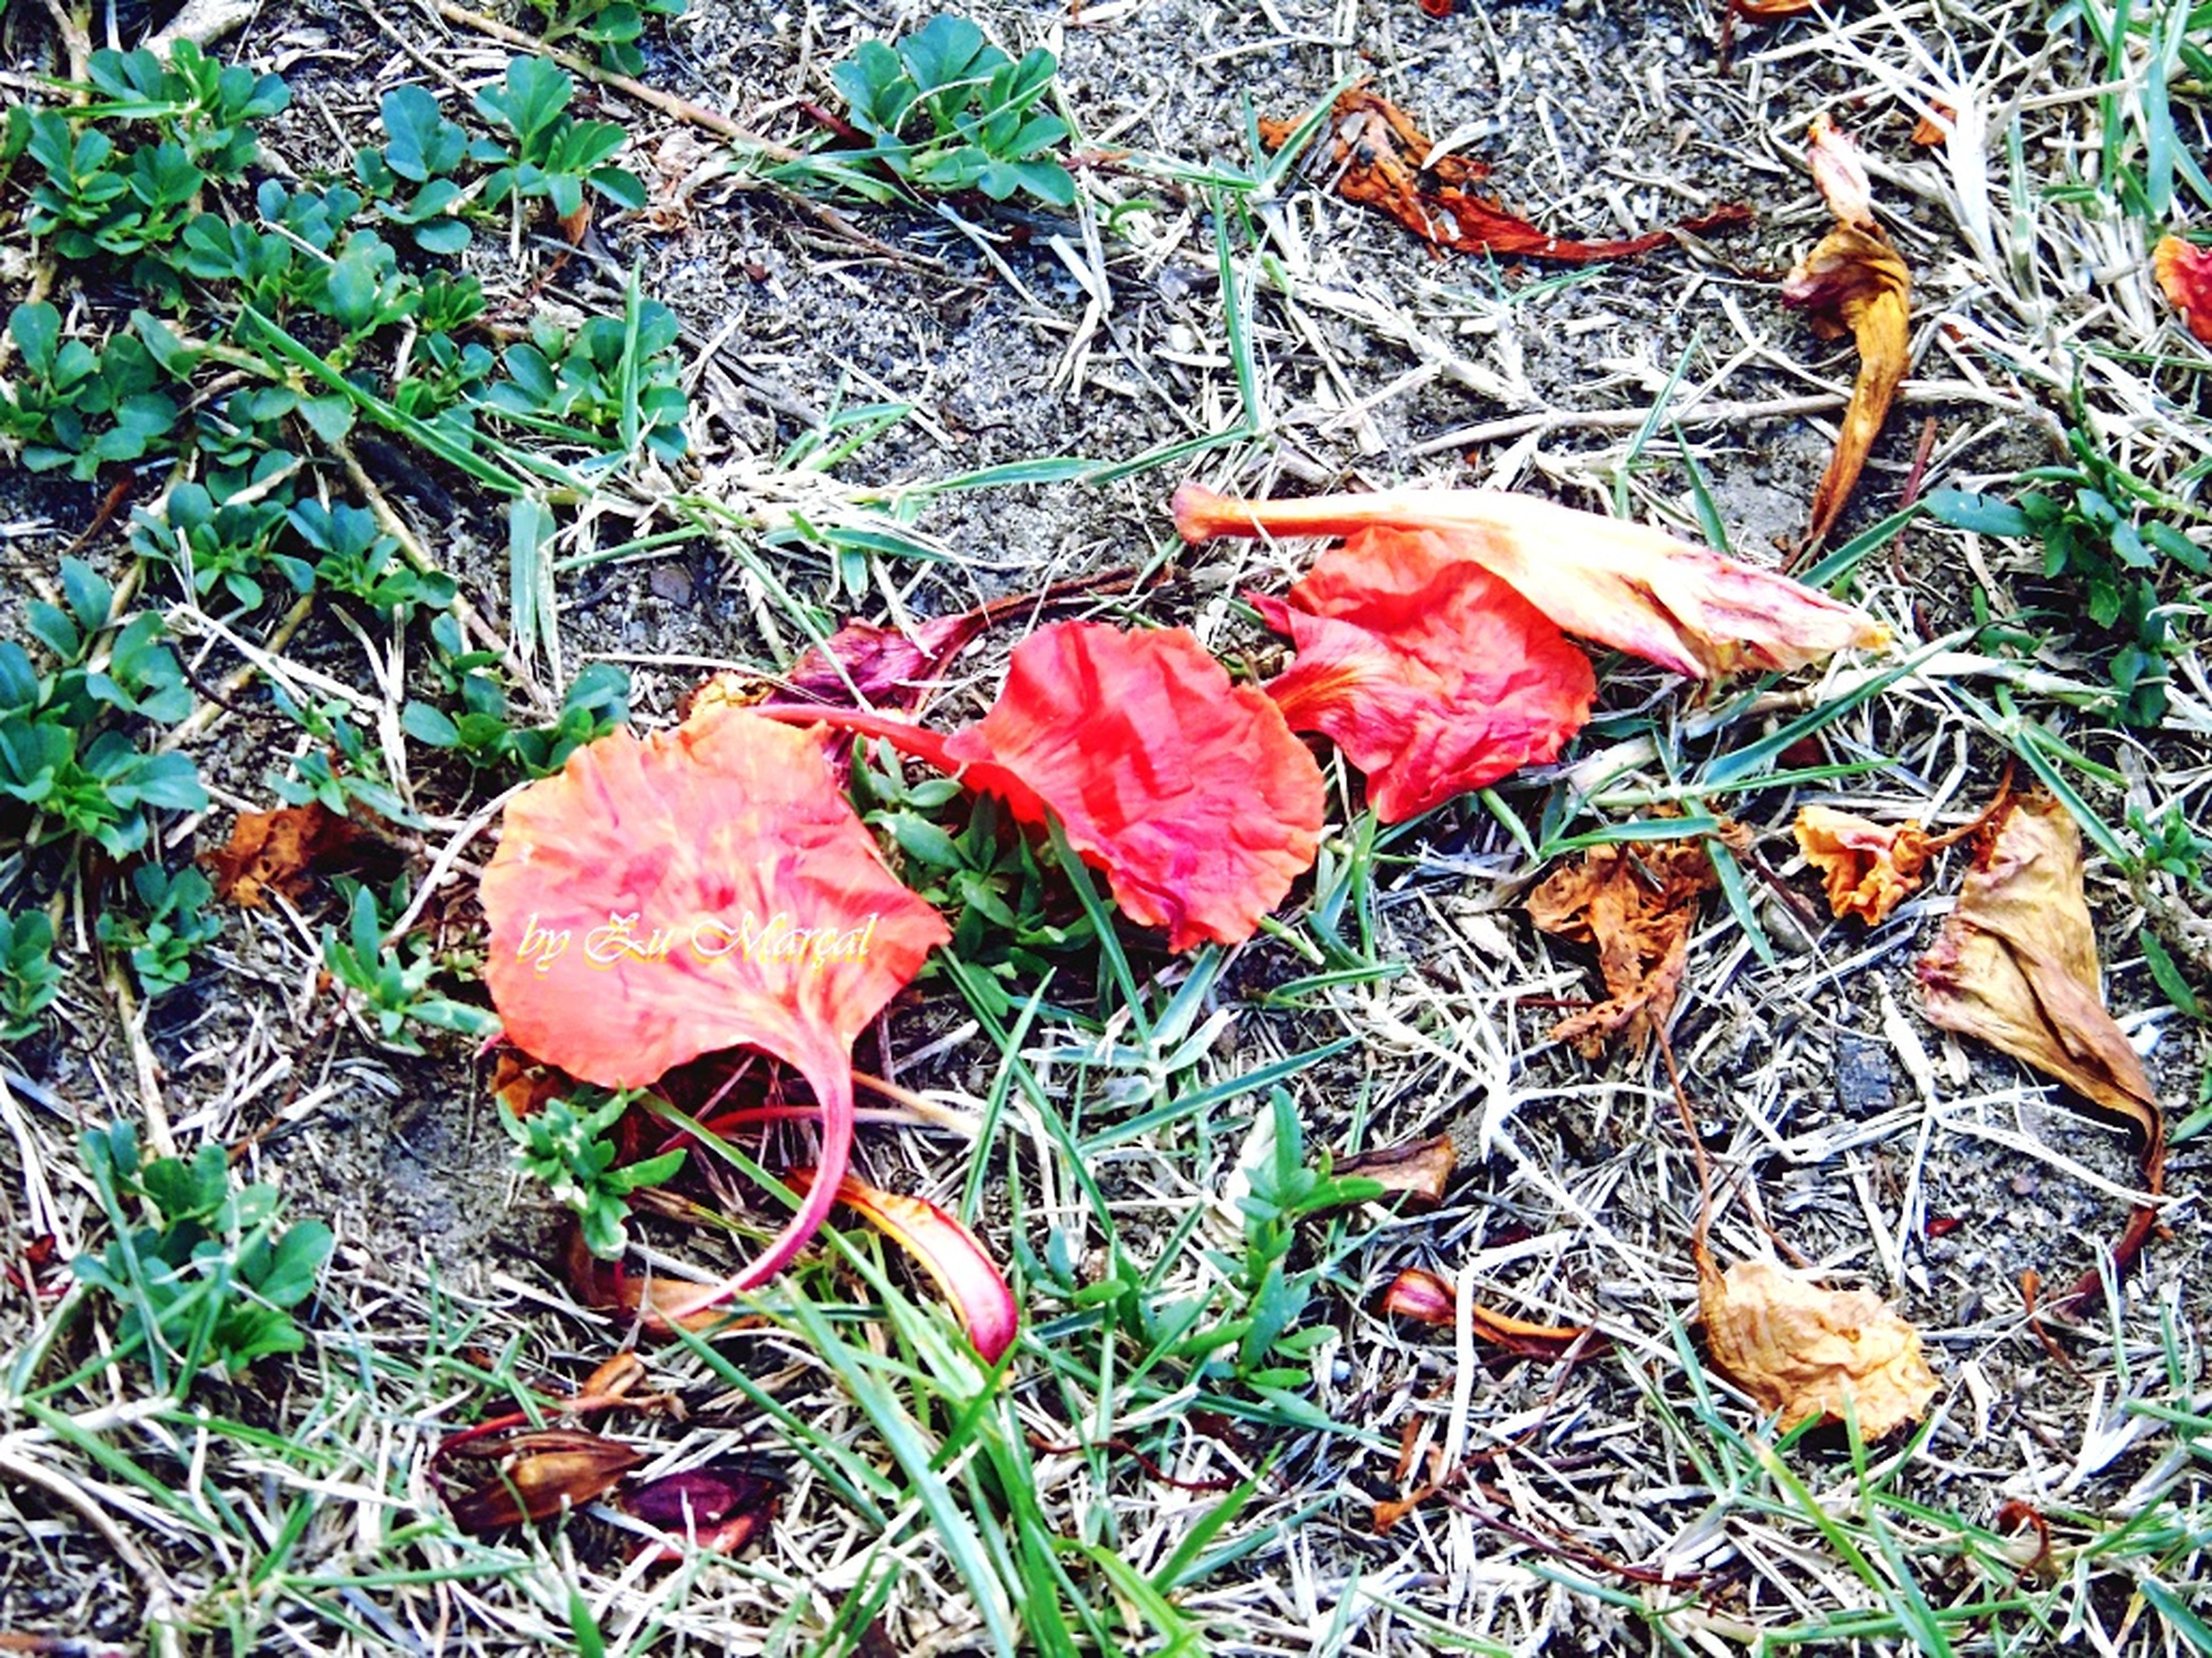 leaf, autumn, grass, change, dry, field, high angle view, nature, fallen, leaves, season, growth, plant, grassy, close-up, day, tranquility, outdoors, ground, beauty in nature